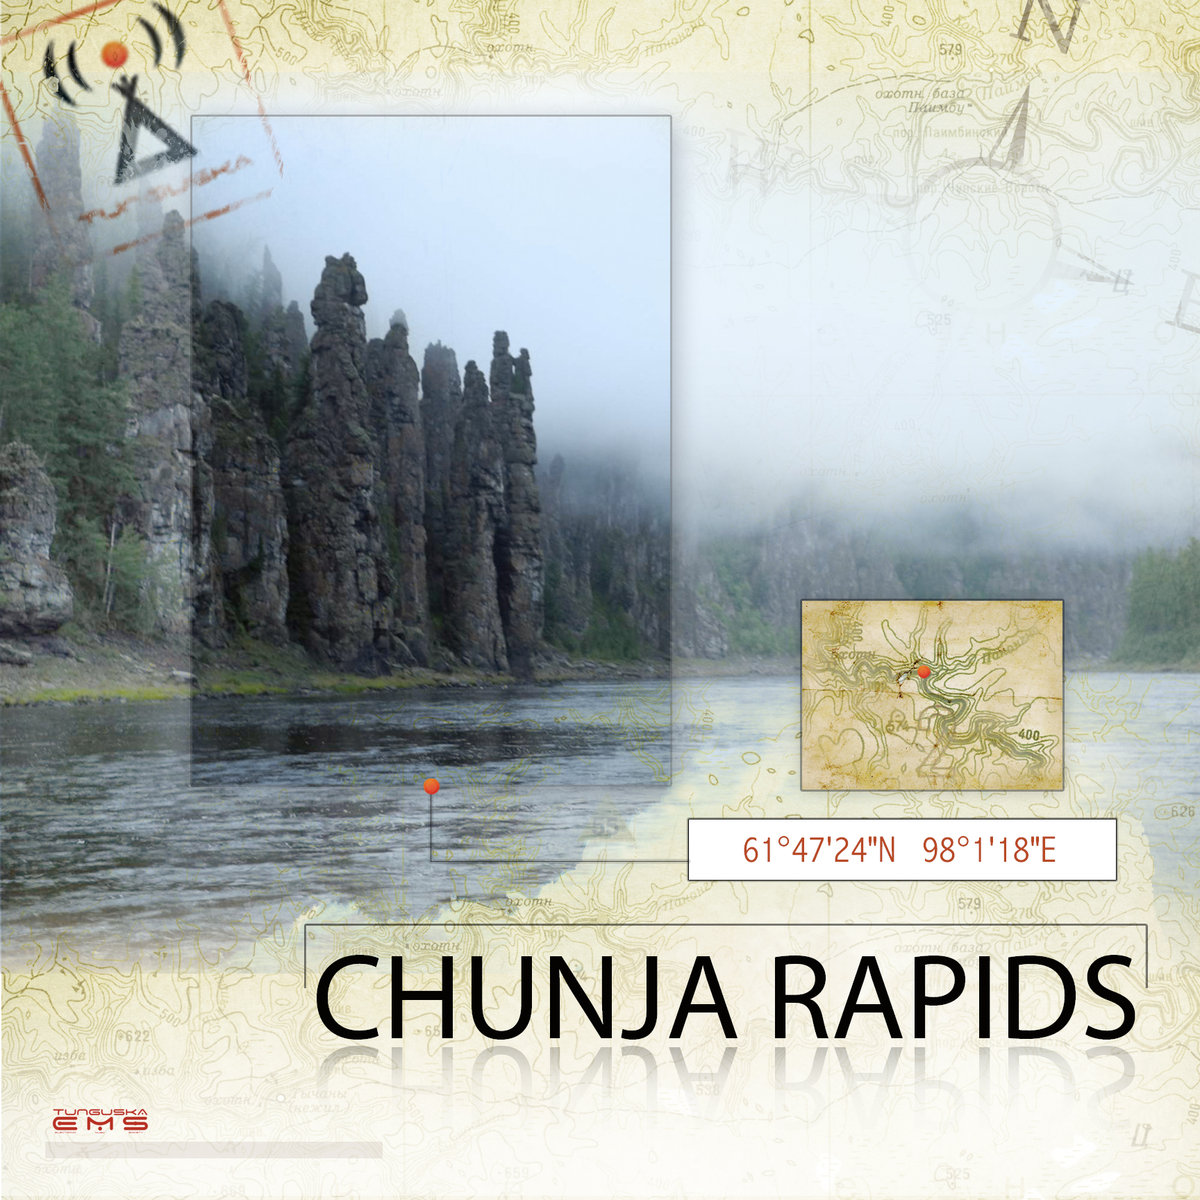 Wandering Wind & WMRI - Entrance to the Light World @ 'Point - Chunja Rapids' album (electronic, ambient)